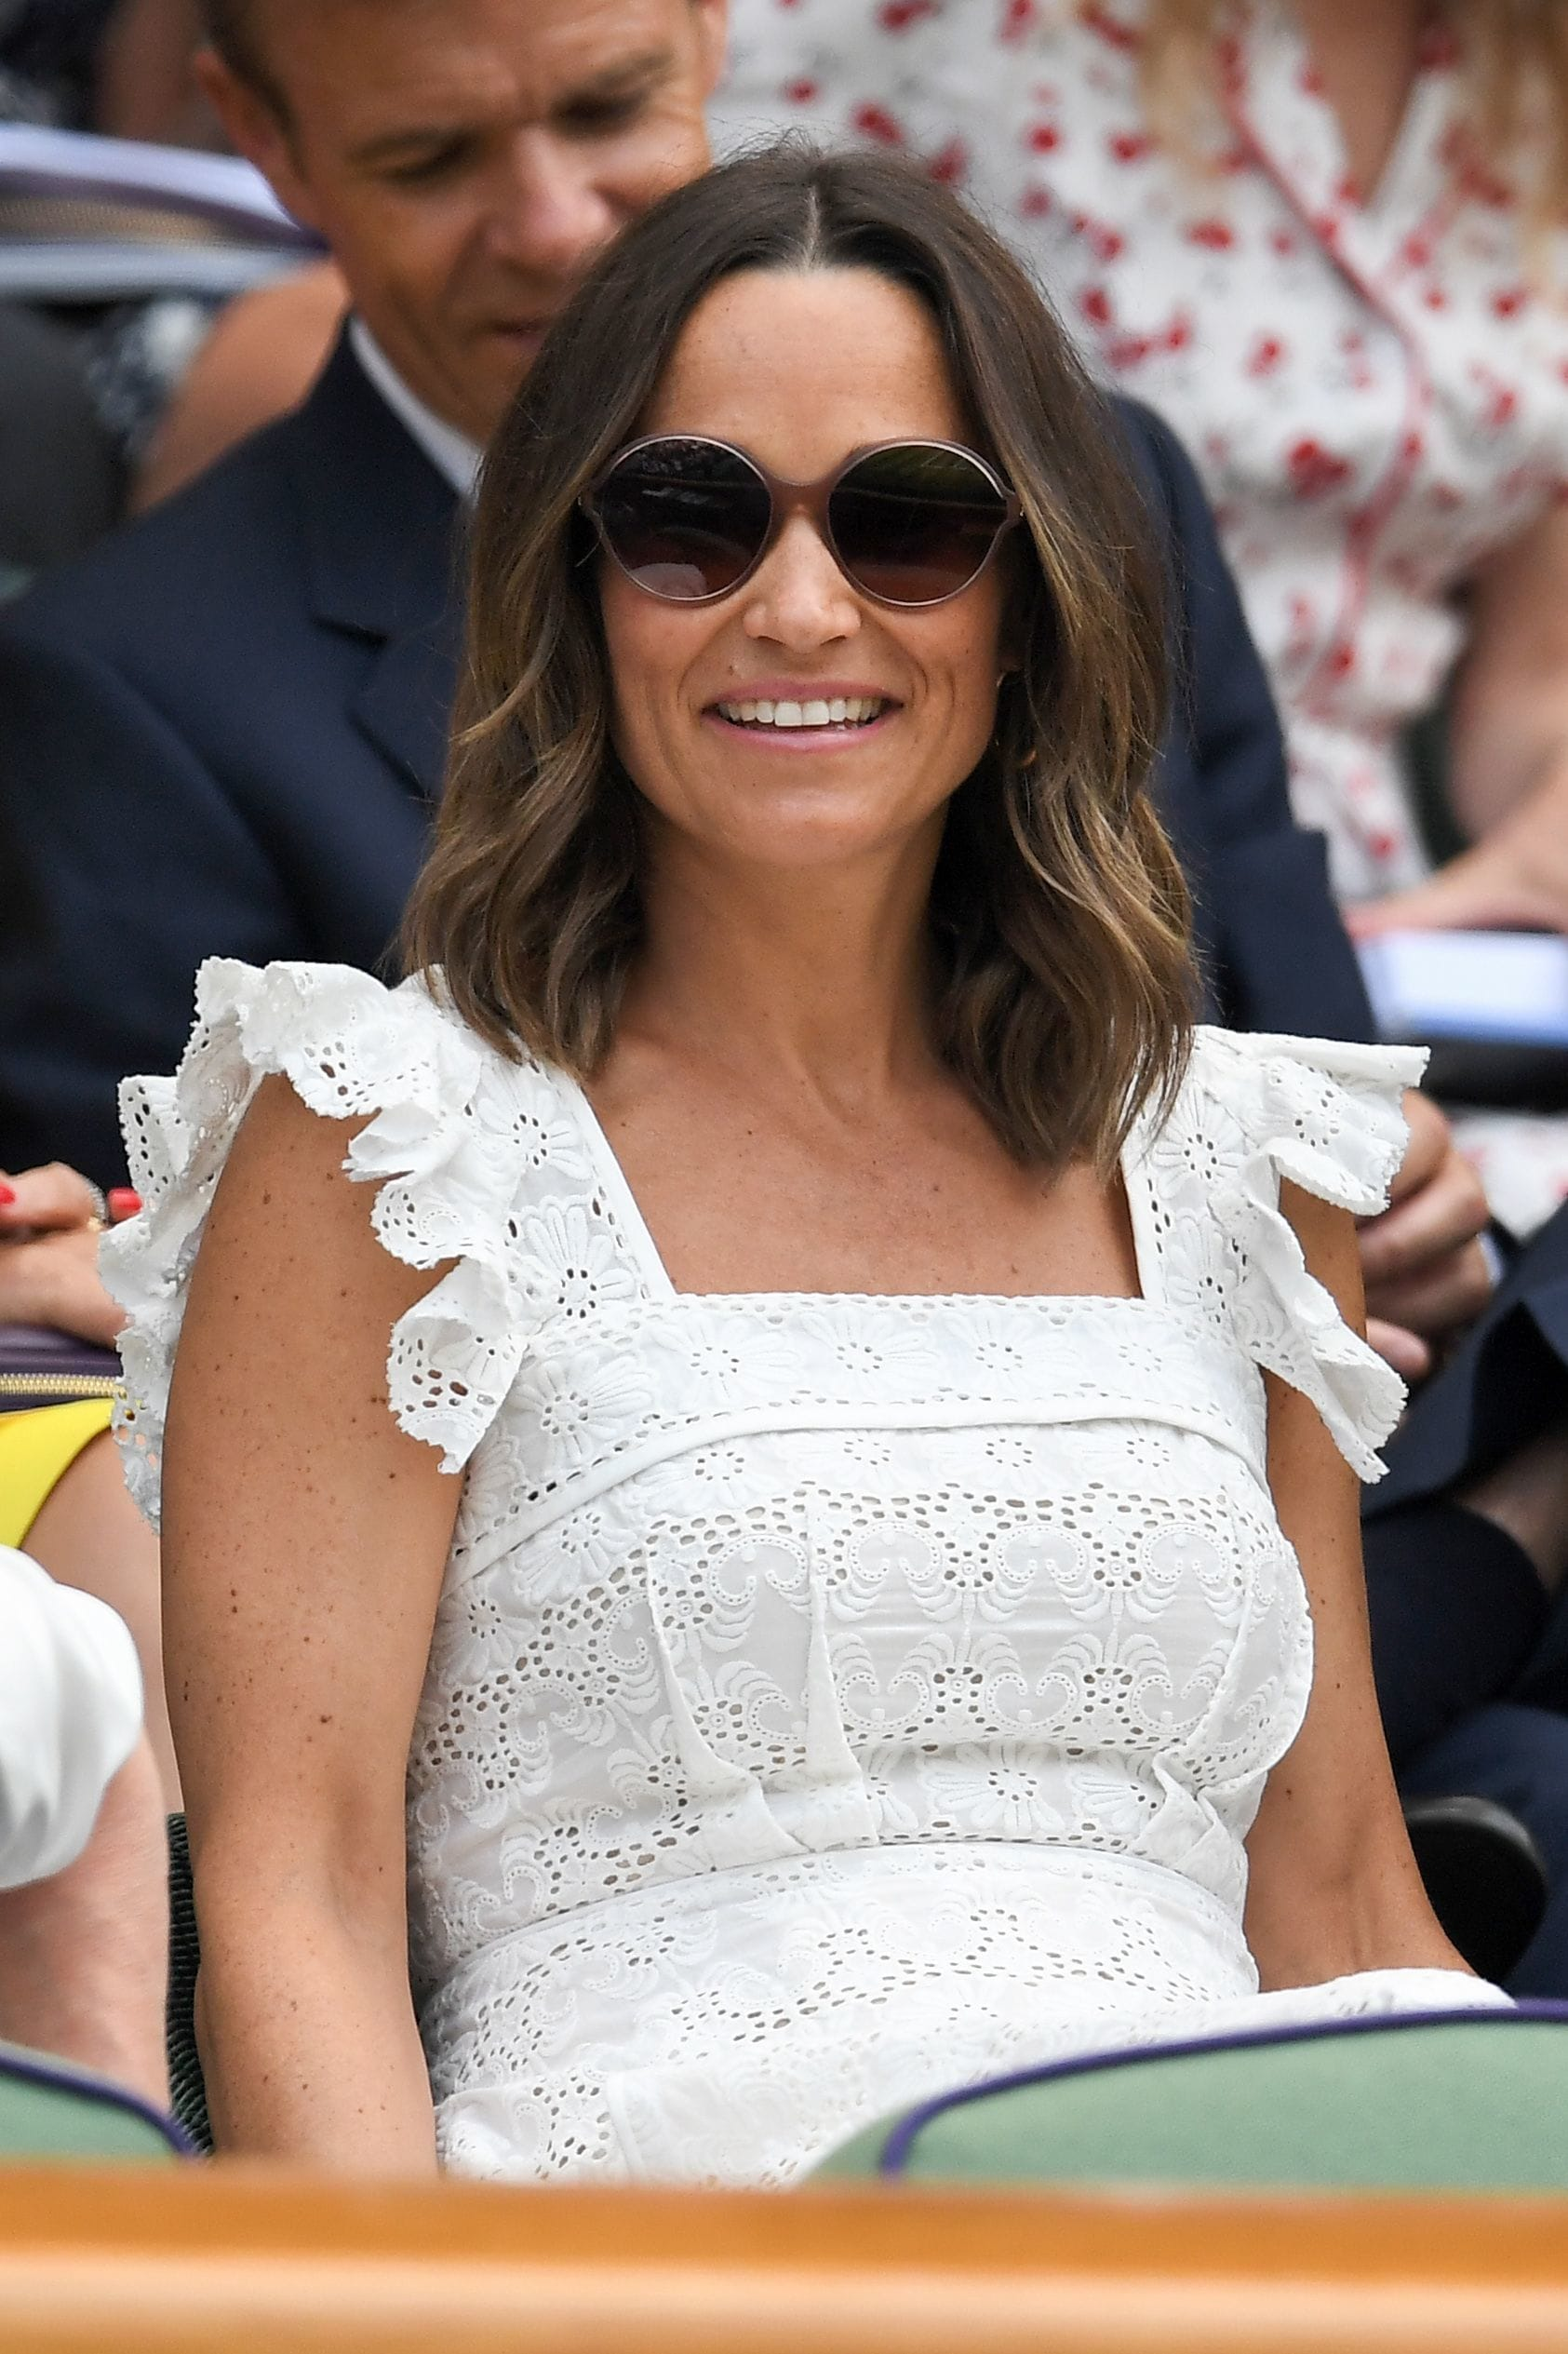 Pippa Middleton sitting courtside at Wimbledon 2018. Pippa is wearing a white dress with her shoulder-length brown highlighted hair styled in a wavy lob